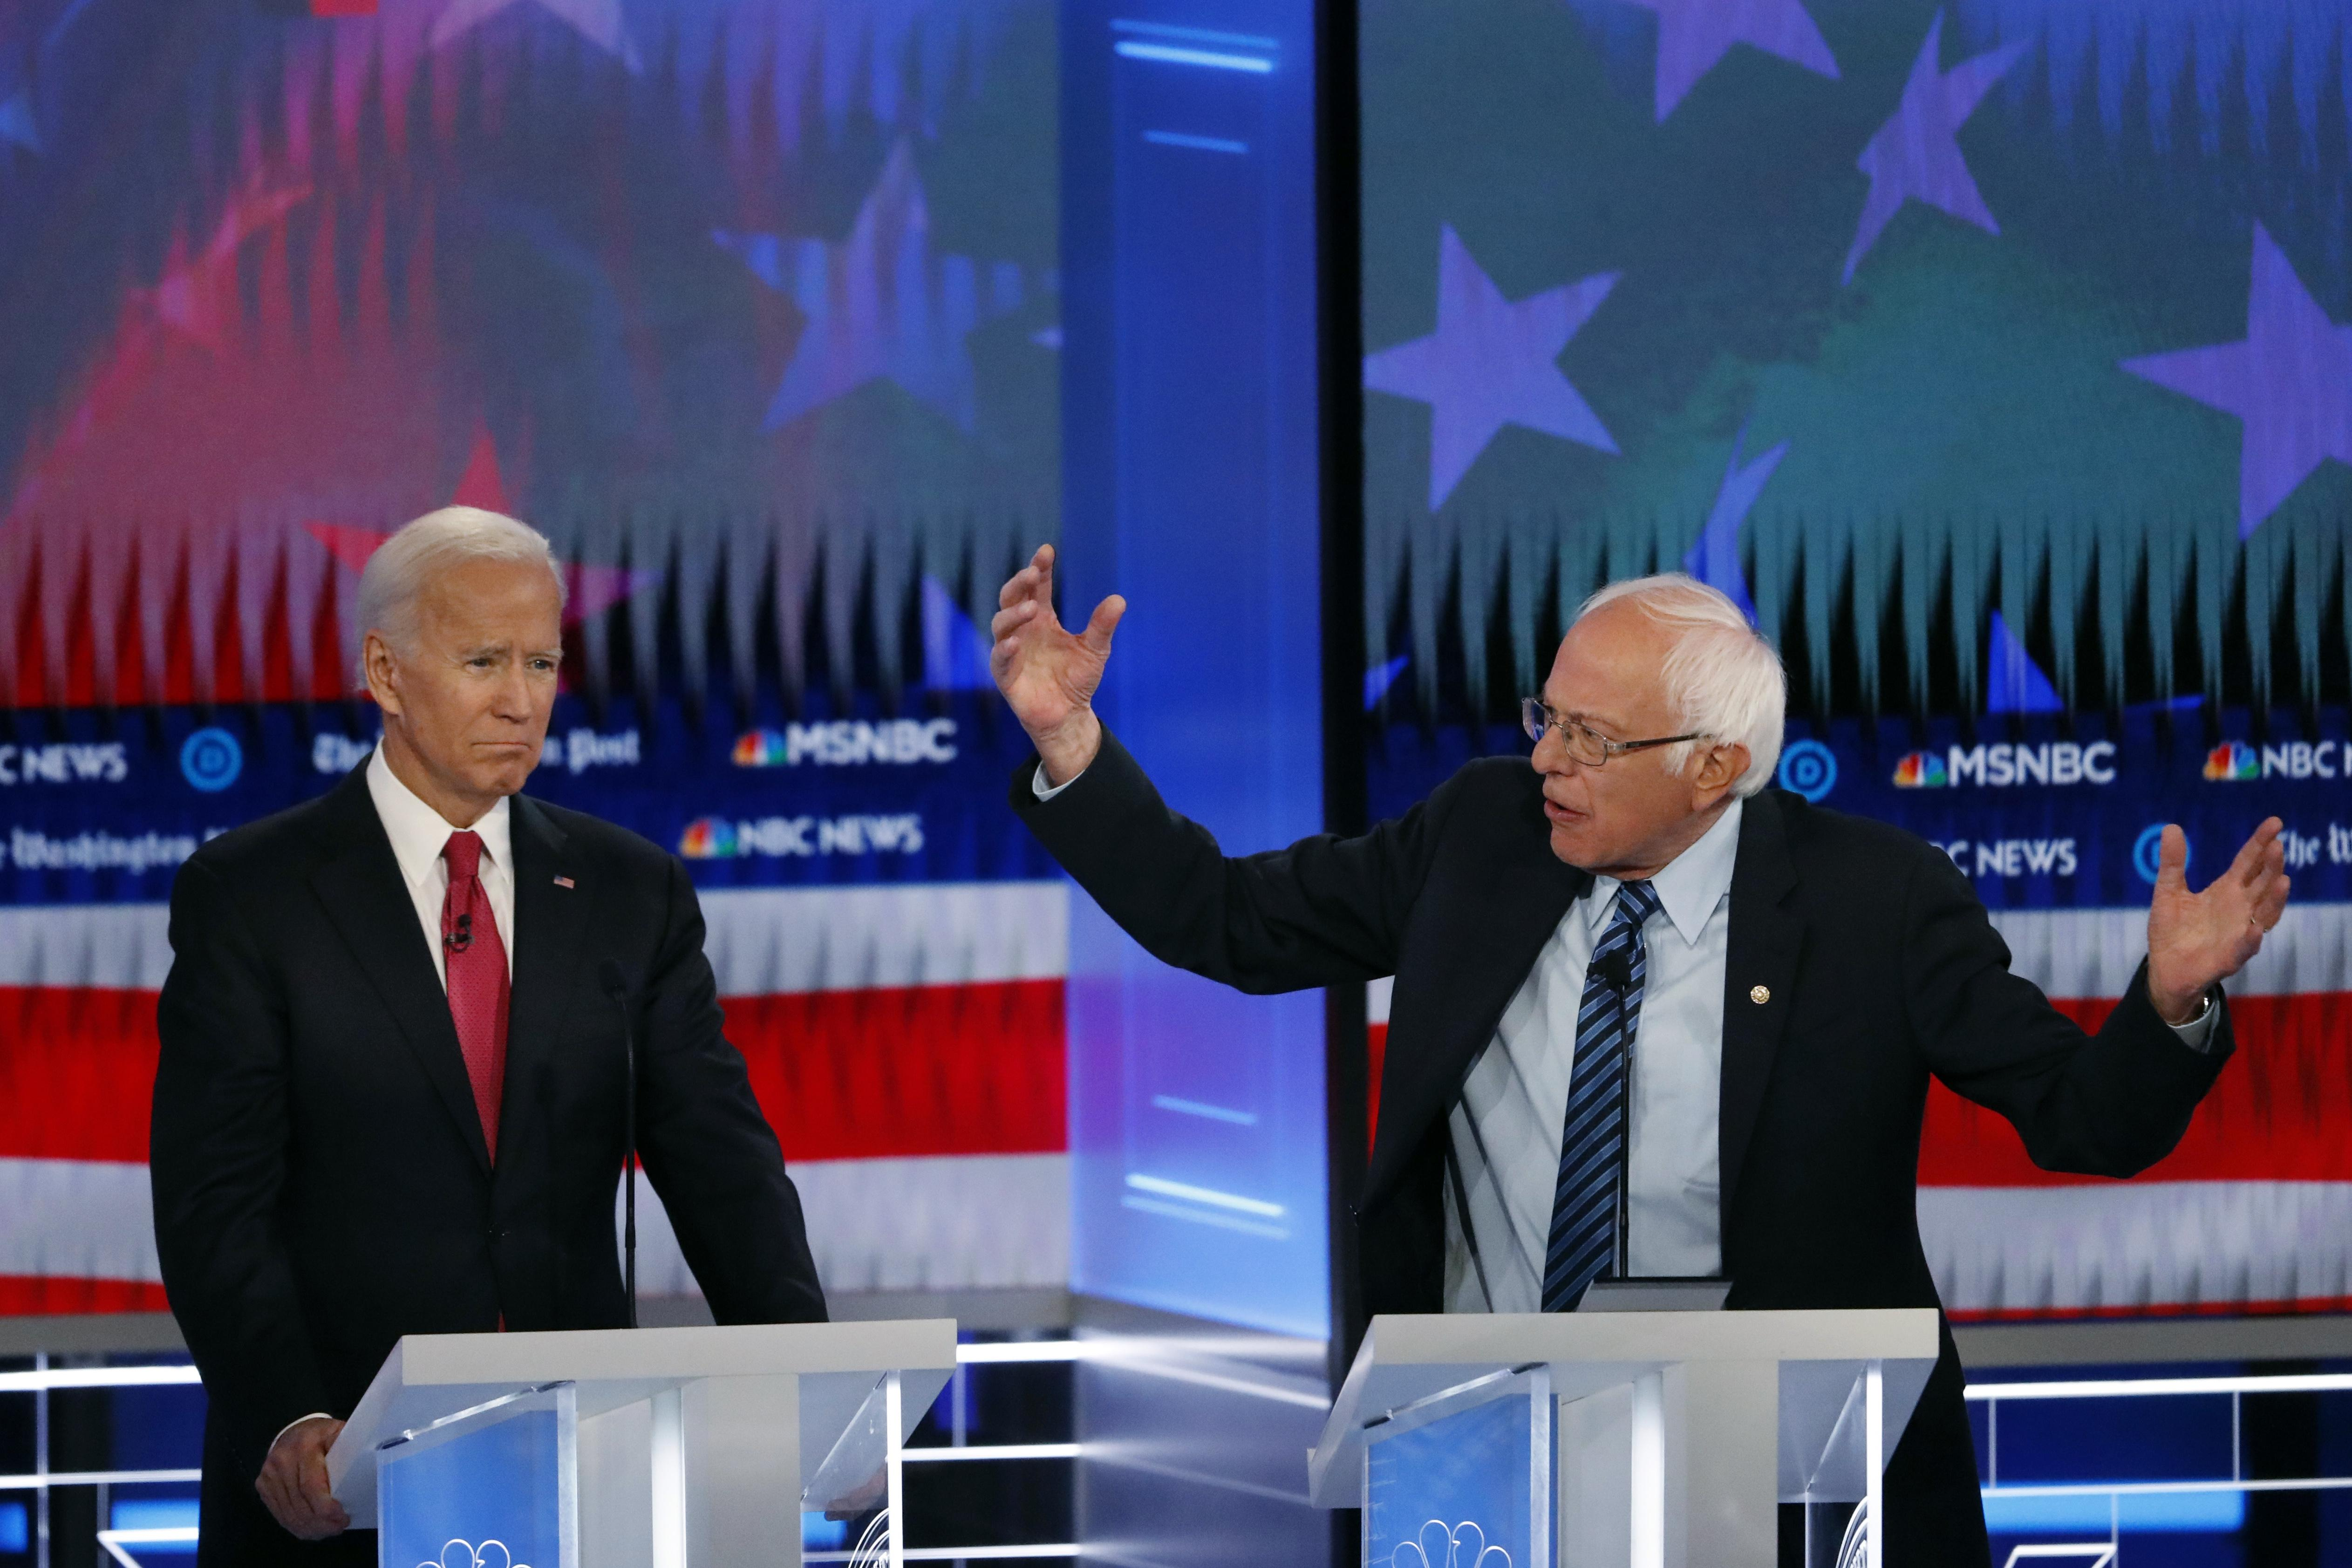 Joe Biden, Bernie Sanders top 2020 Democratic presidential field: Poll